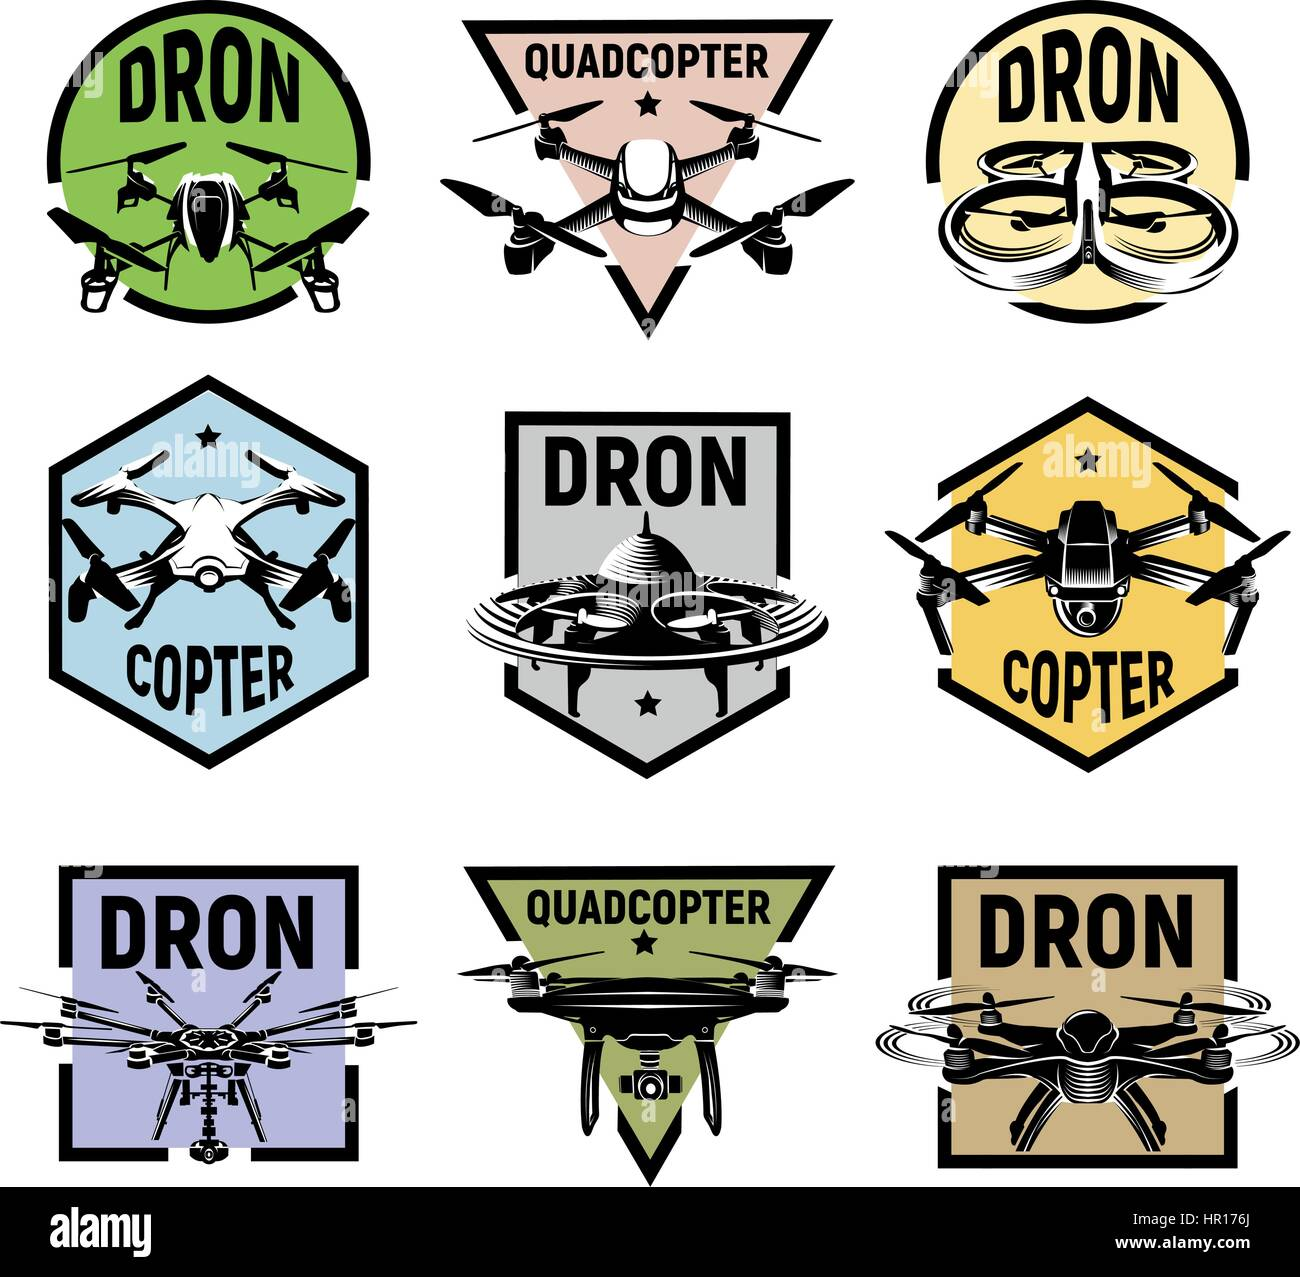 Isolated quadcopter icons in colorful frames, rc drone logos collection, fpv device logotype set vector illustration. - Stock Image